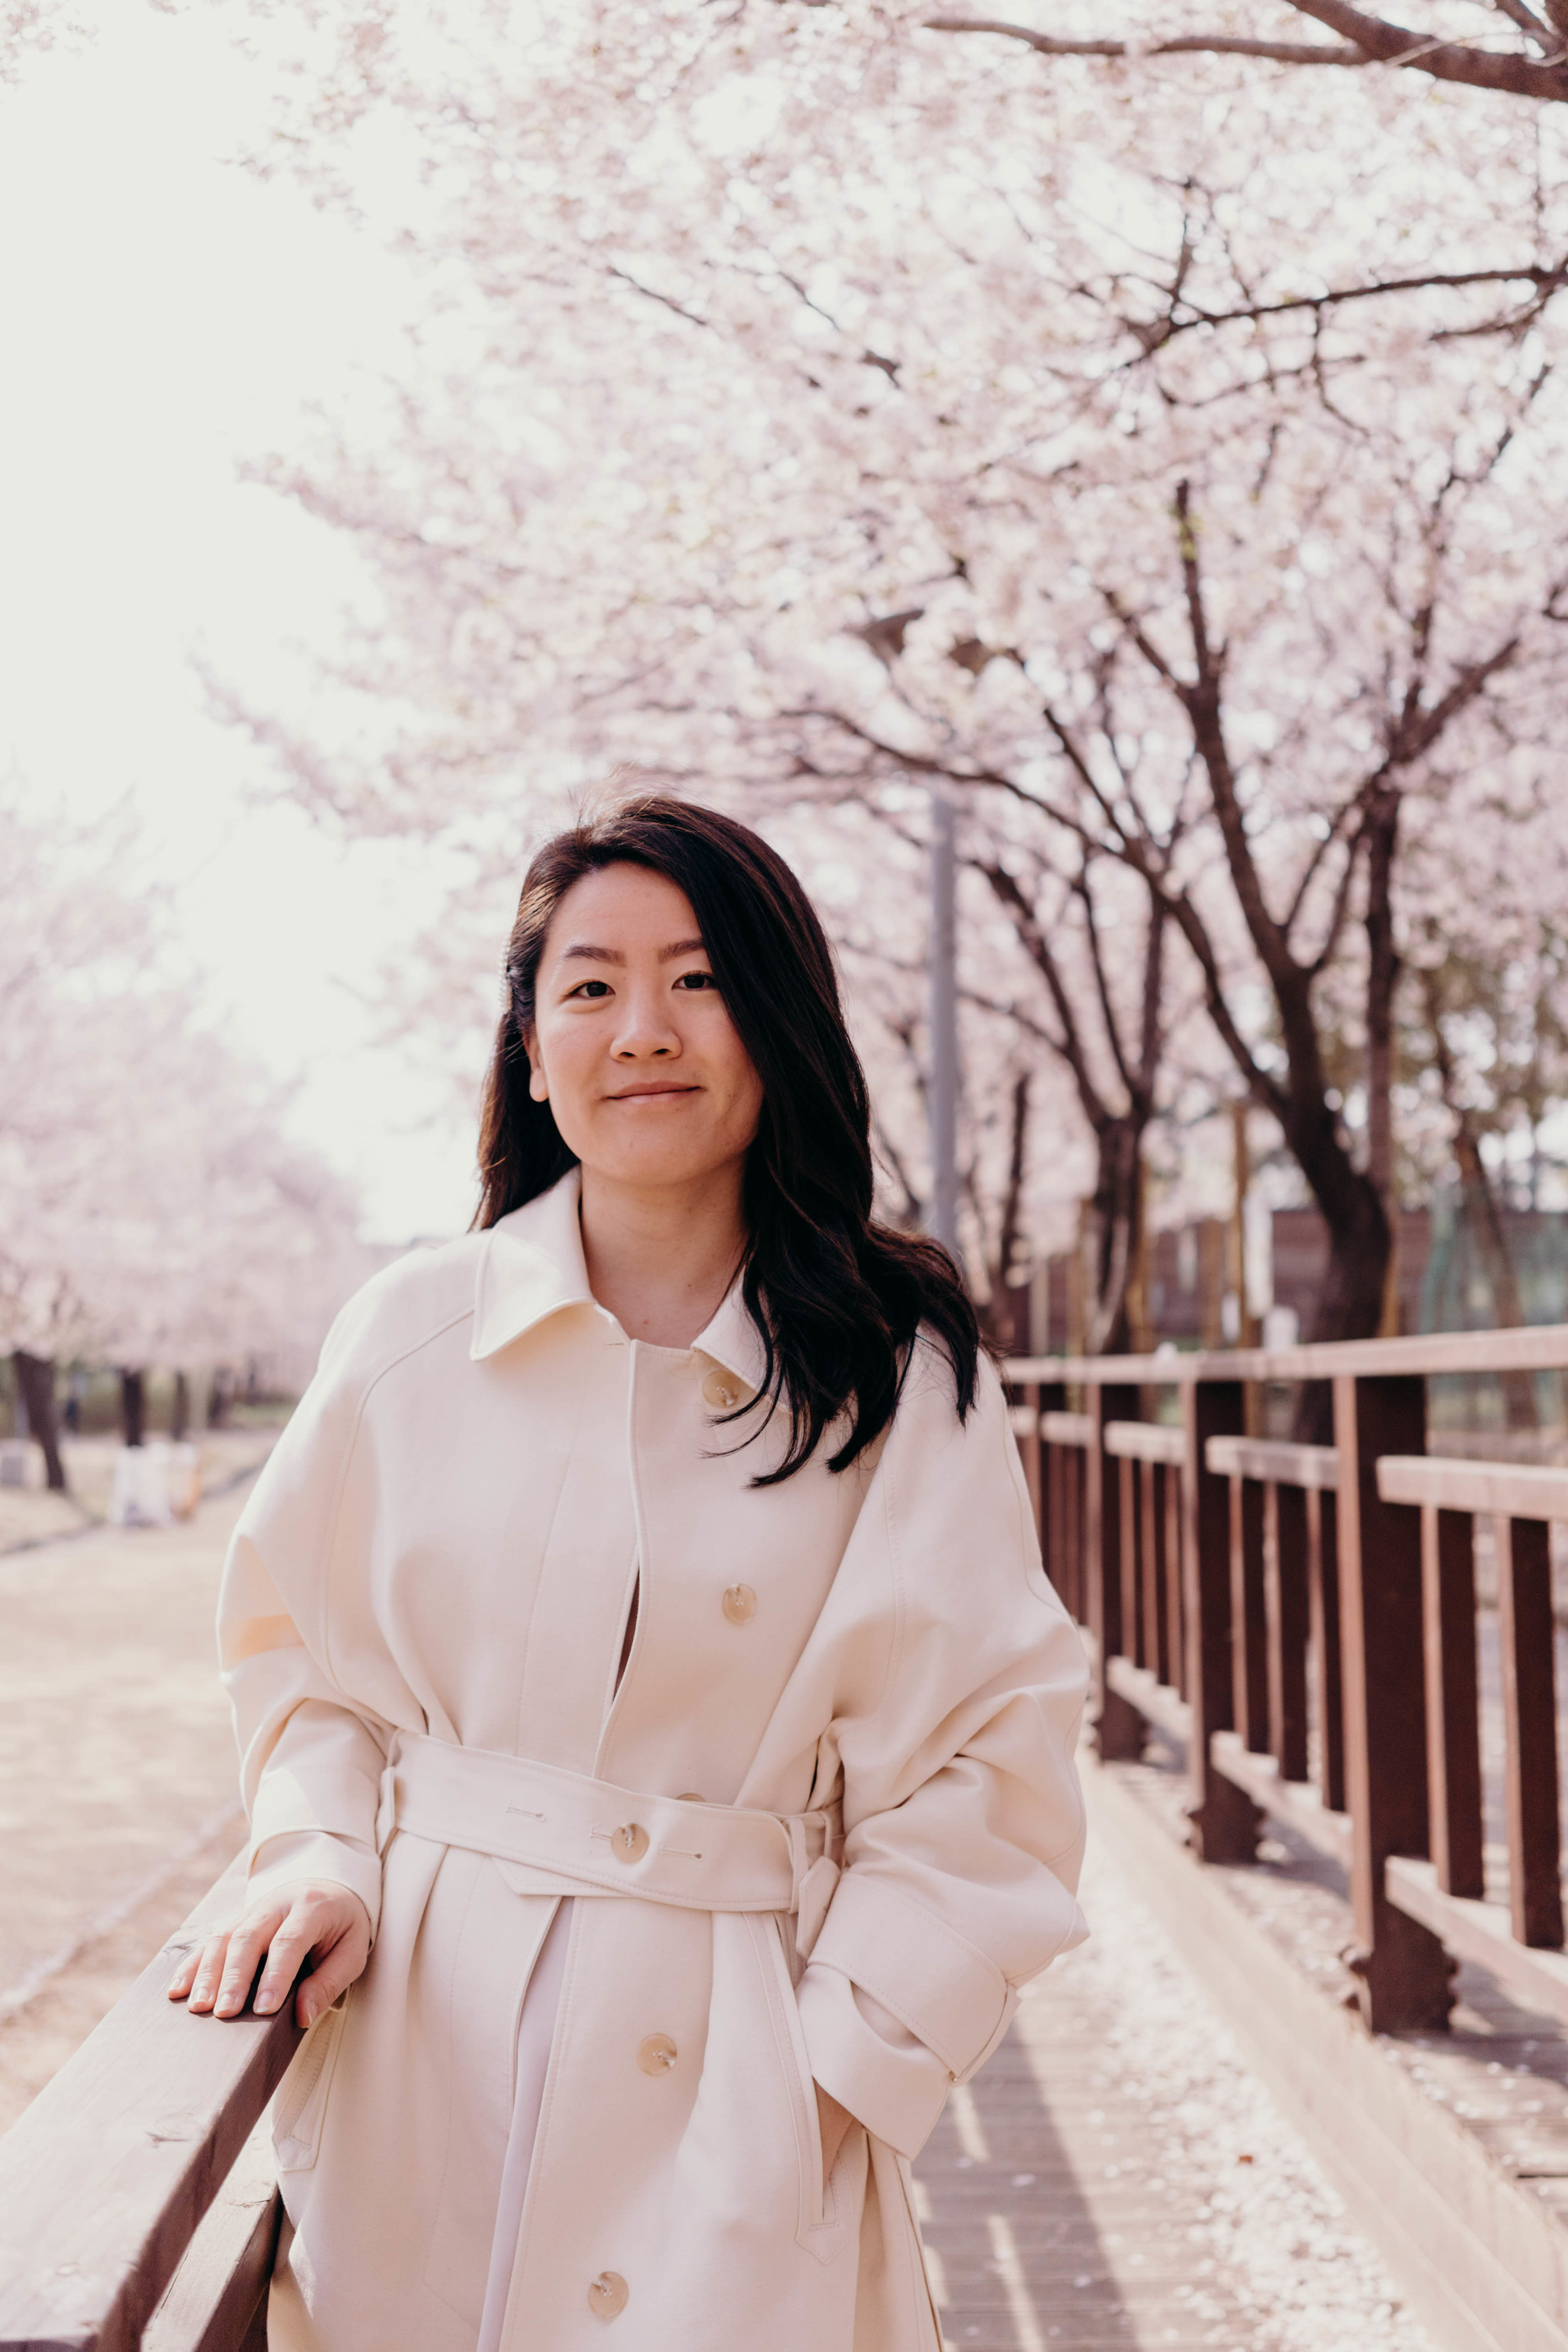 Three of My Favorite Pieces in My Wardrobe at the Moment (and the Spring Pieces I'm Coveting)   On the Street Where We Live ( aretherelilactrees.com )  spring, style, trench coat, tidy coat, silk cami, silk skirt, pearl barrette, 3.another, Gold Halk, Belmto, cherry blossoms, Seoul, South Korea